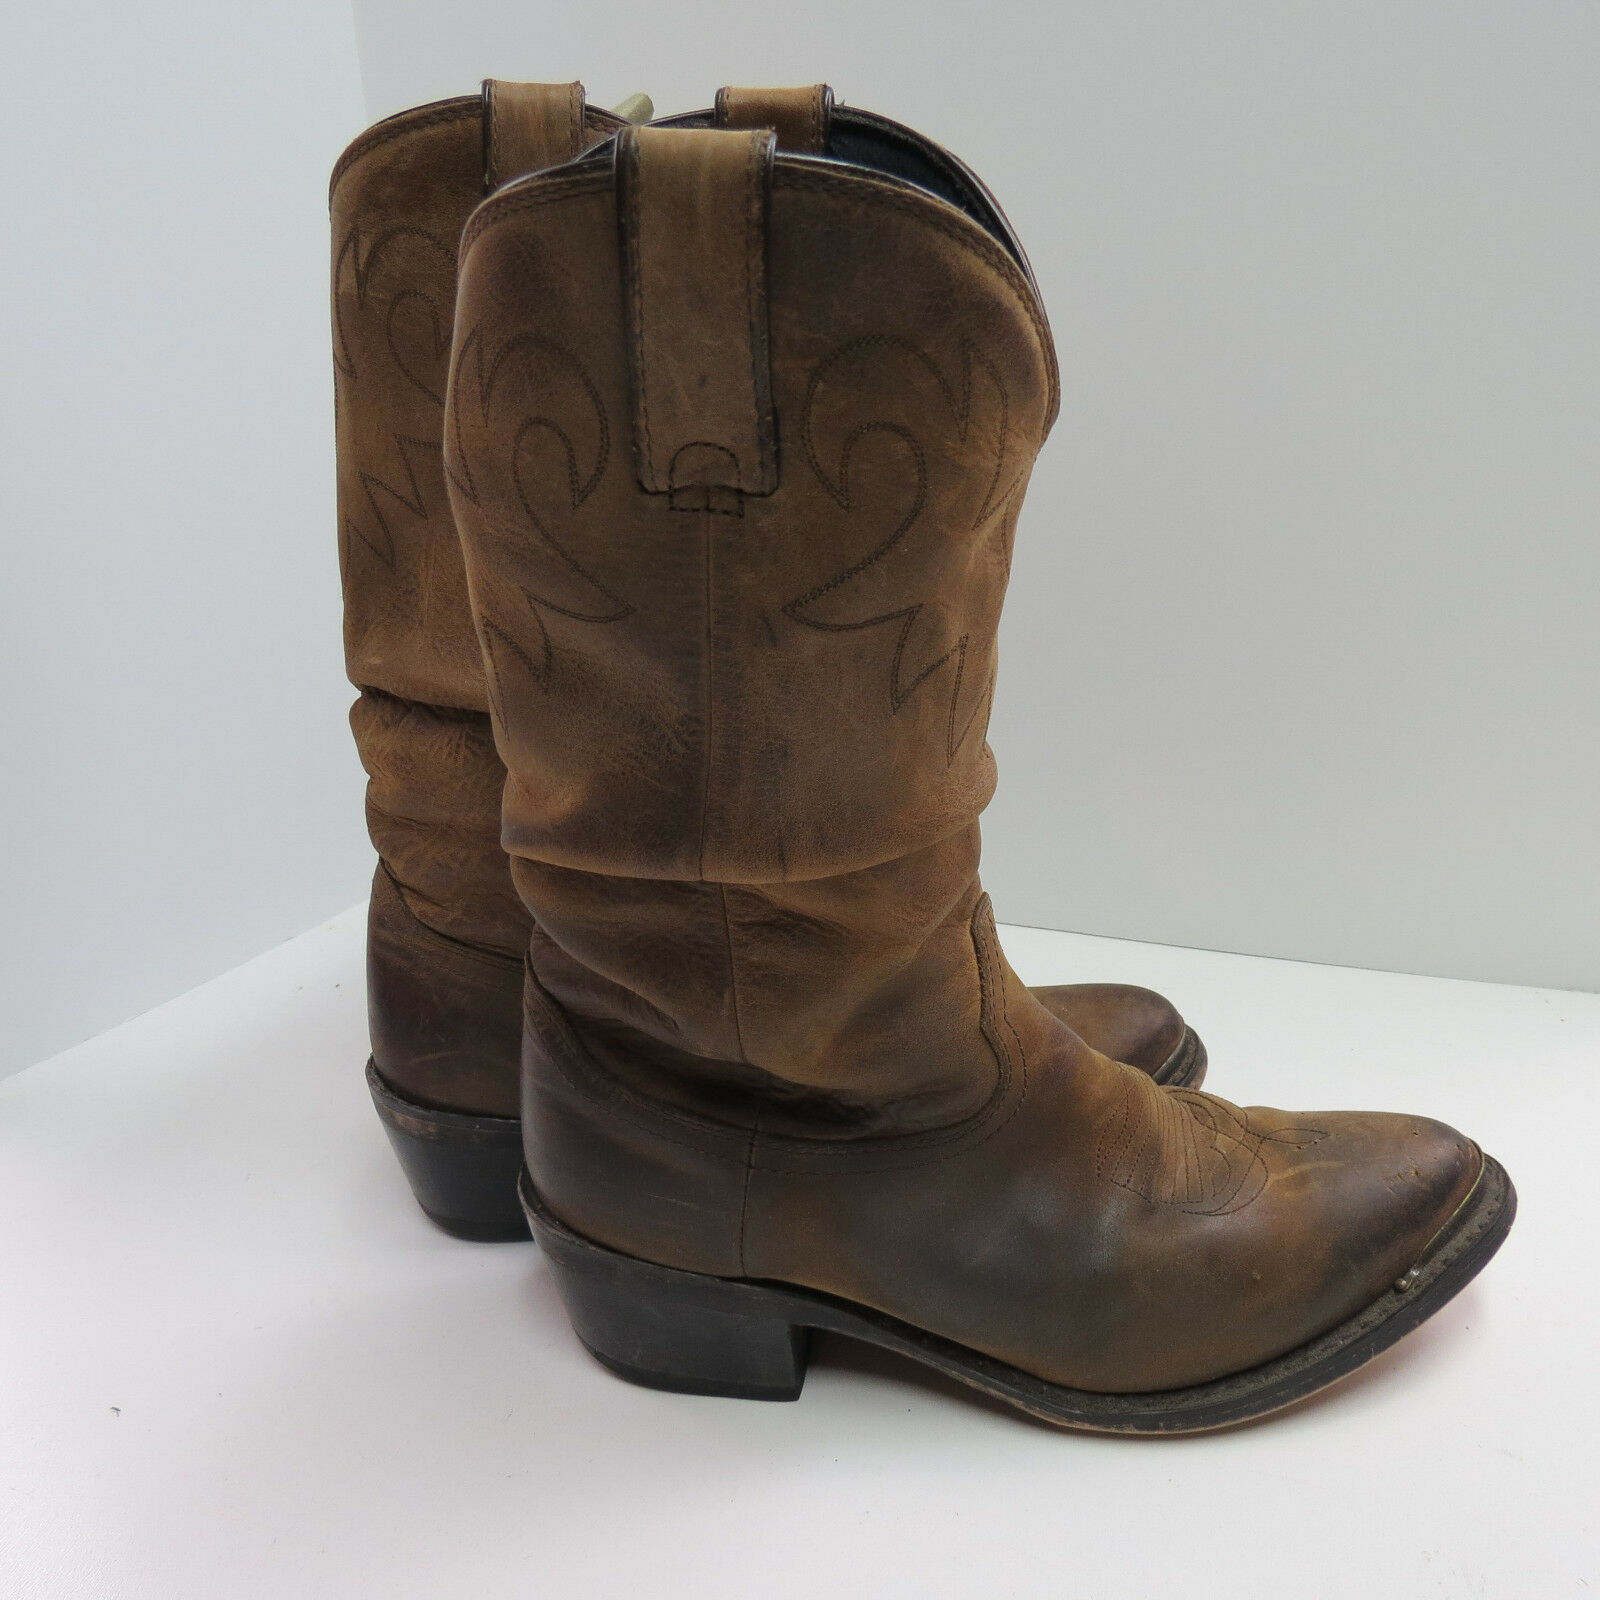 8b4563ae05c Details about Durango Size 8 EE 12